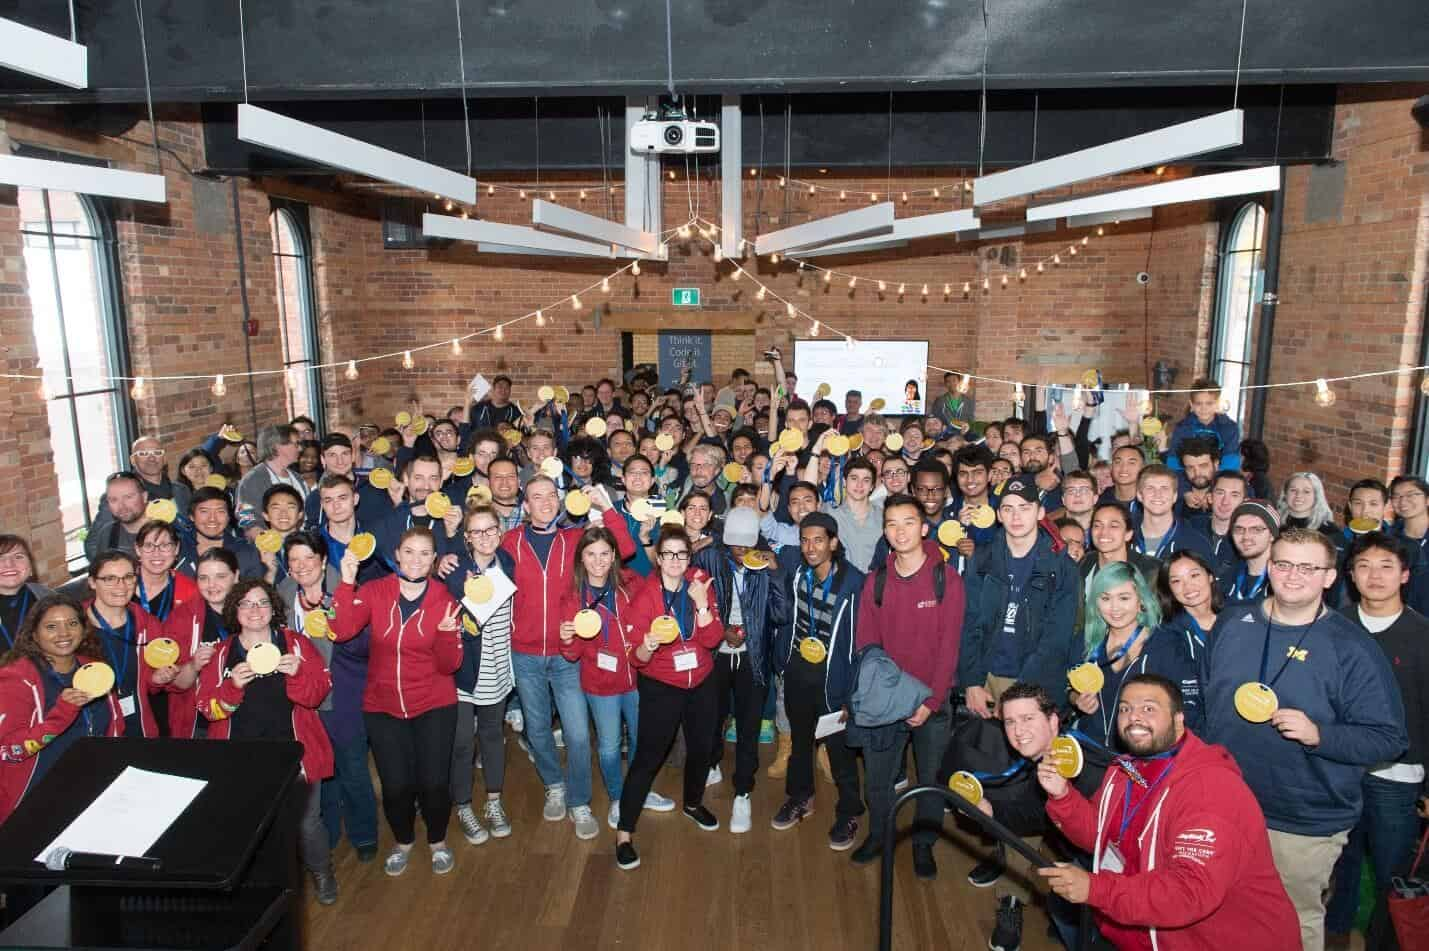 GiftTheCode - Group photo of inspiring designers and coders.